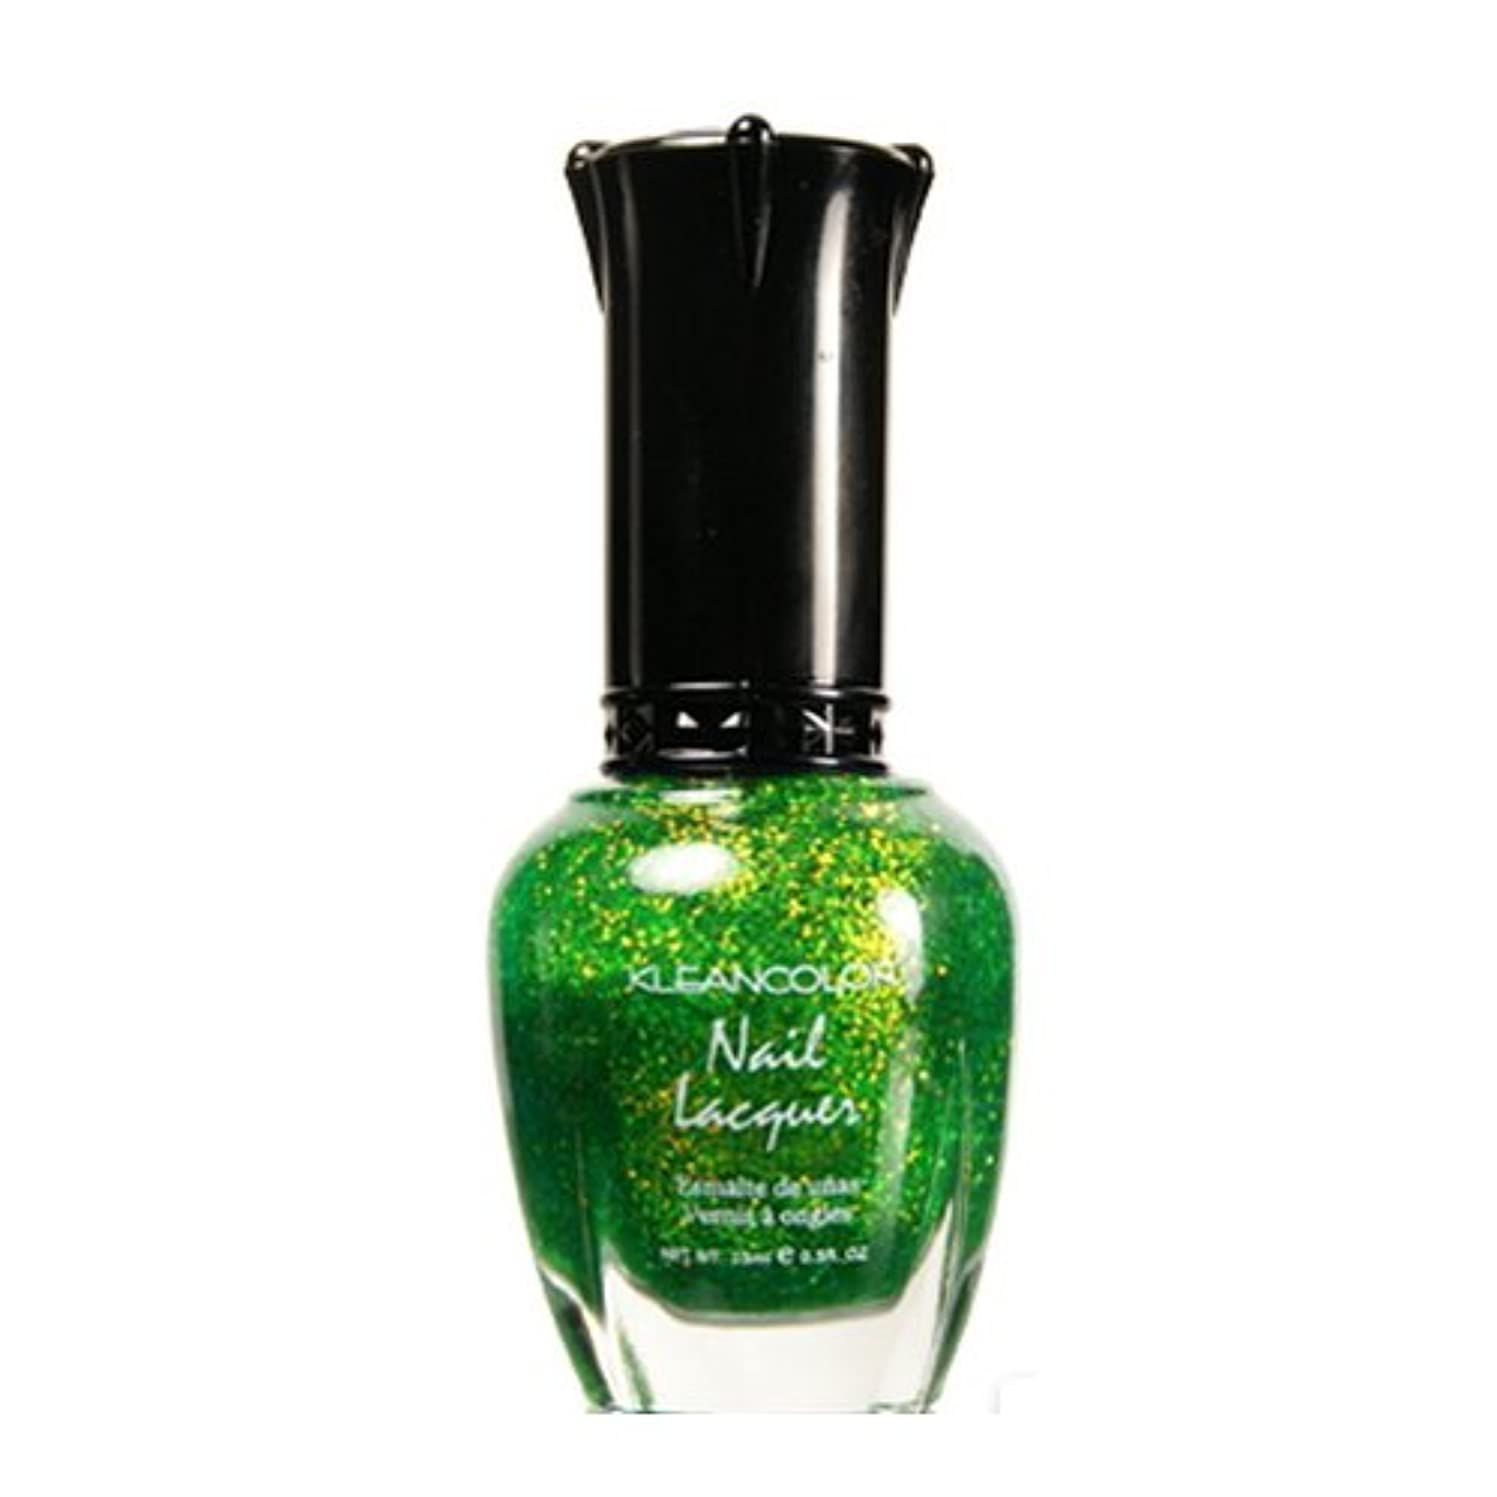 KLEANCOLOR Nail Lacquer 4 - Chunky Holo Clover (並行輸入品)